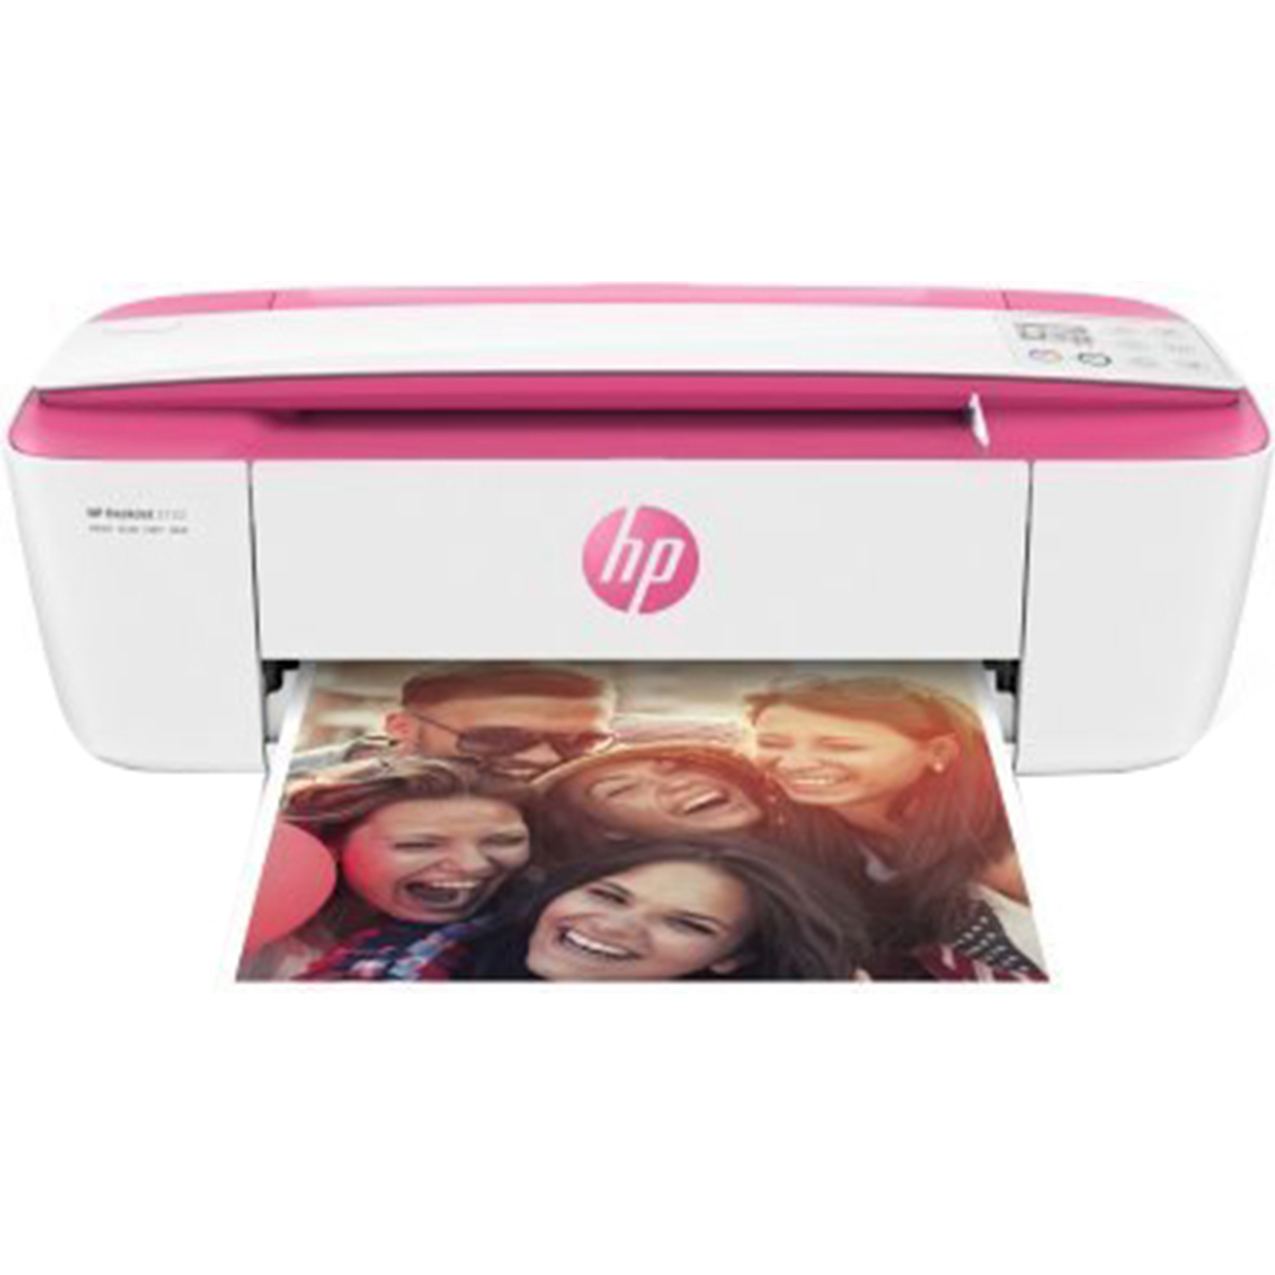 Refurbished HP 3755 All-in-One Color Ink Jet Printer, Pink